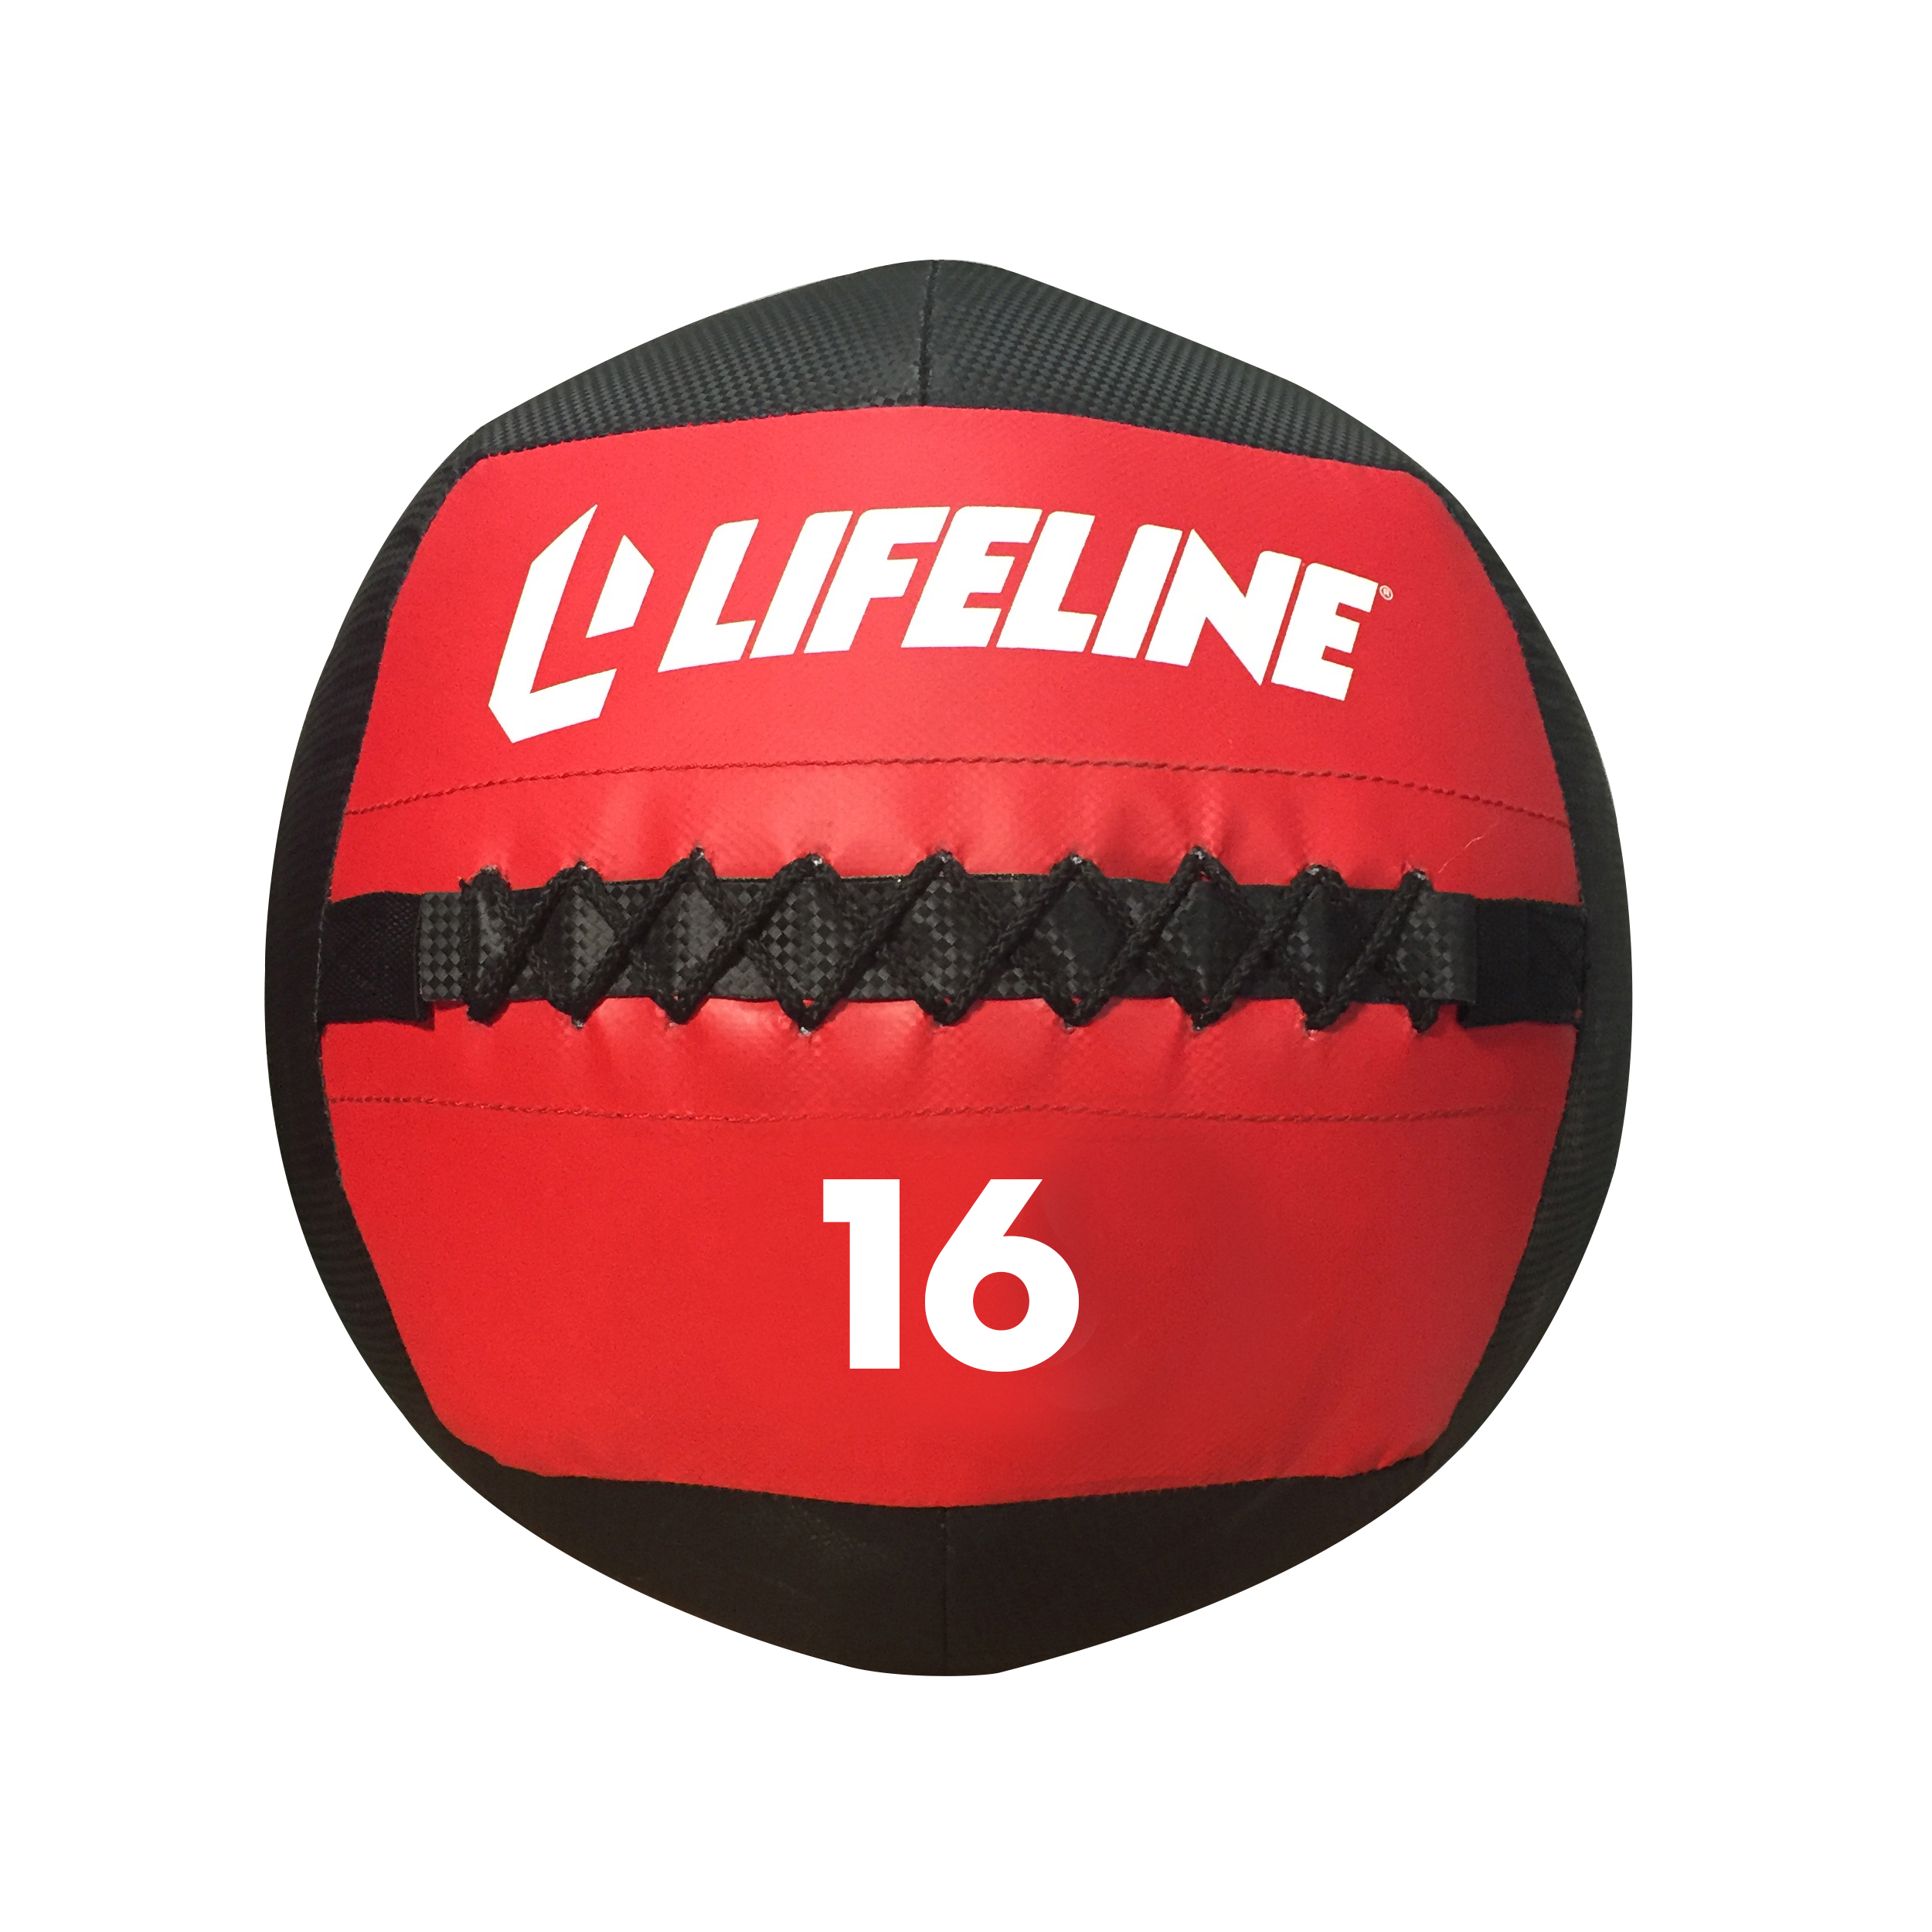 Lifeline Wall Ball - 16lb